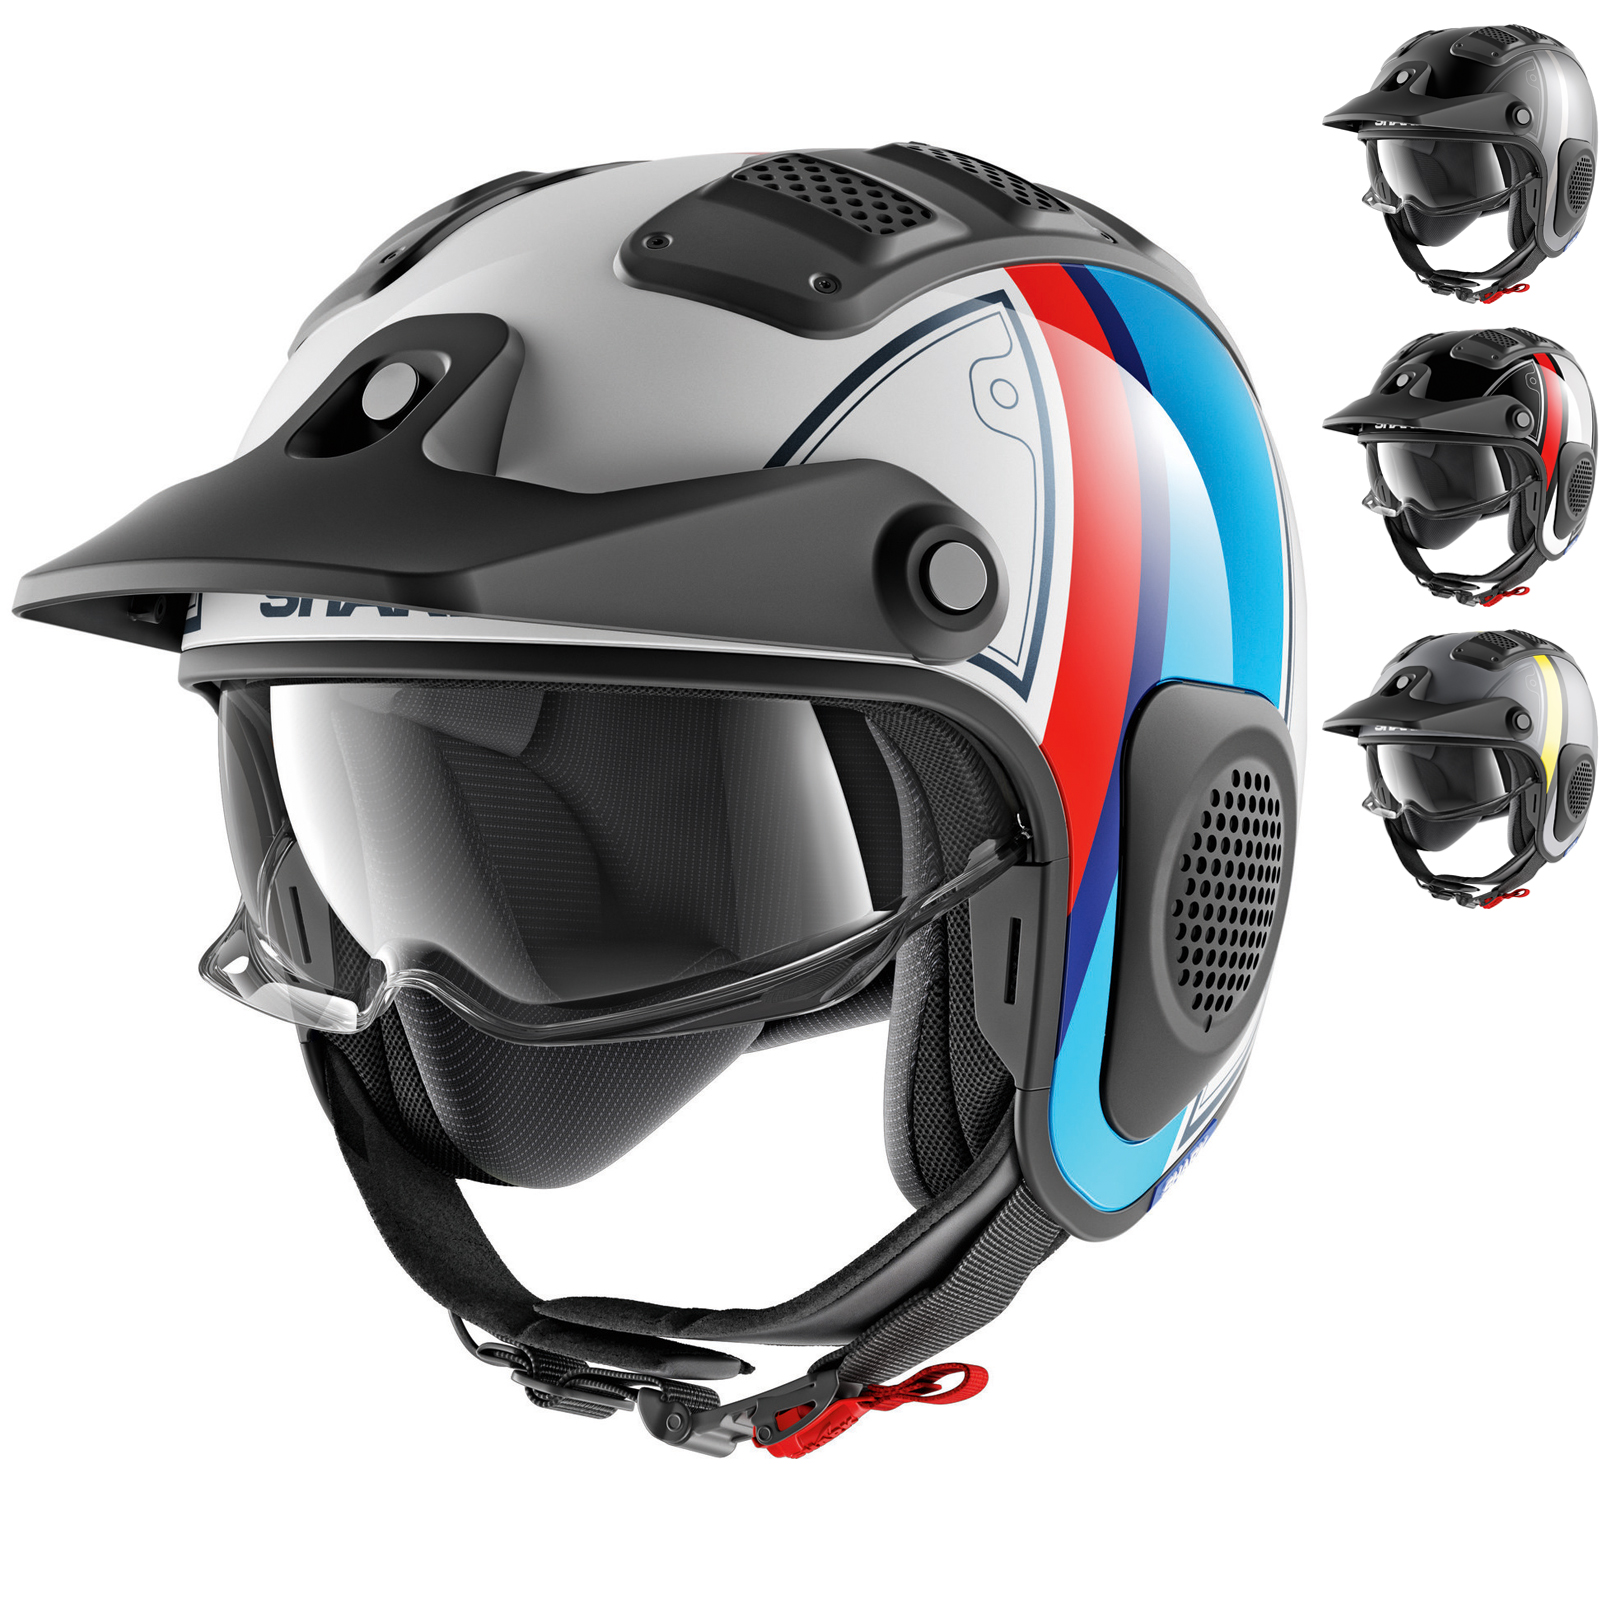 Shark X Drak Terrence Open Face Motorcycle Helmet New Arrivals